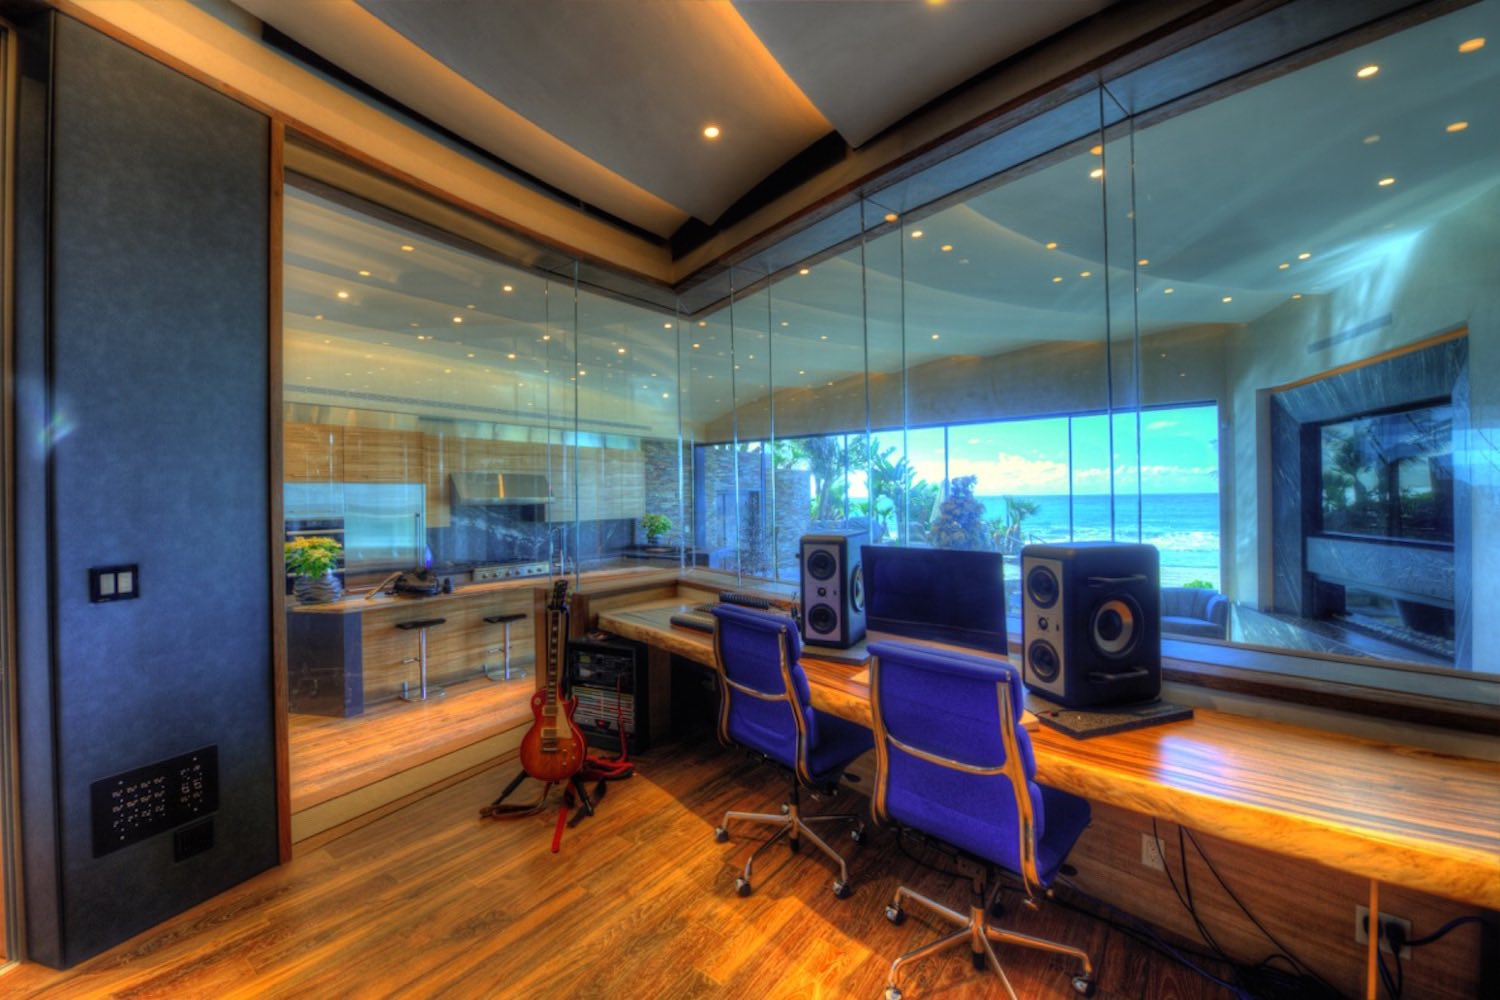 Chris Huber commissioned WSDG to design his residential private ocean-view recording studio inspired in their glass design in Diante Do Trono. Studio 2.